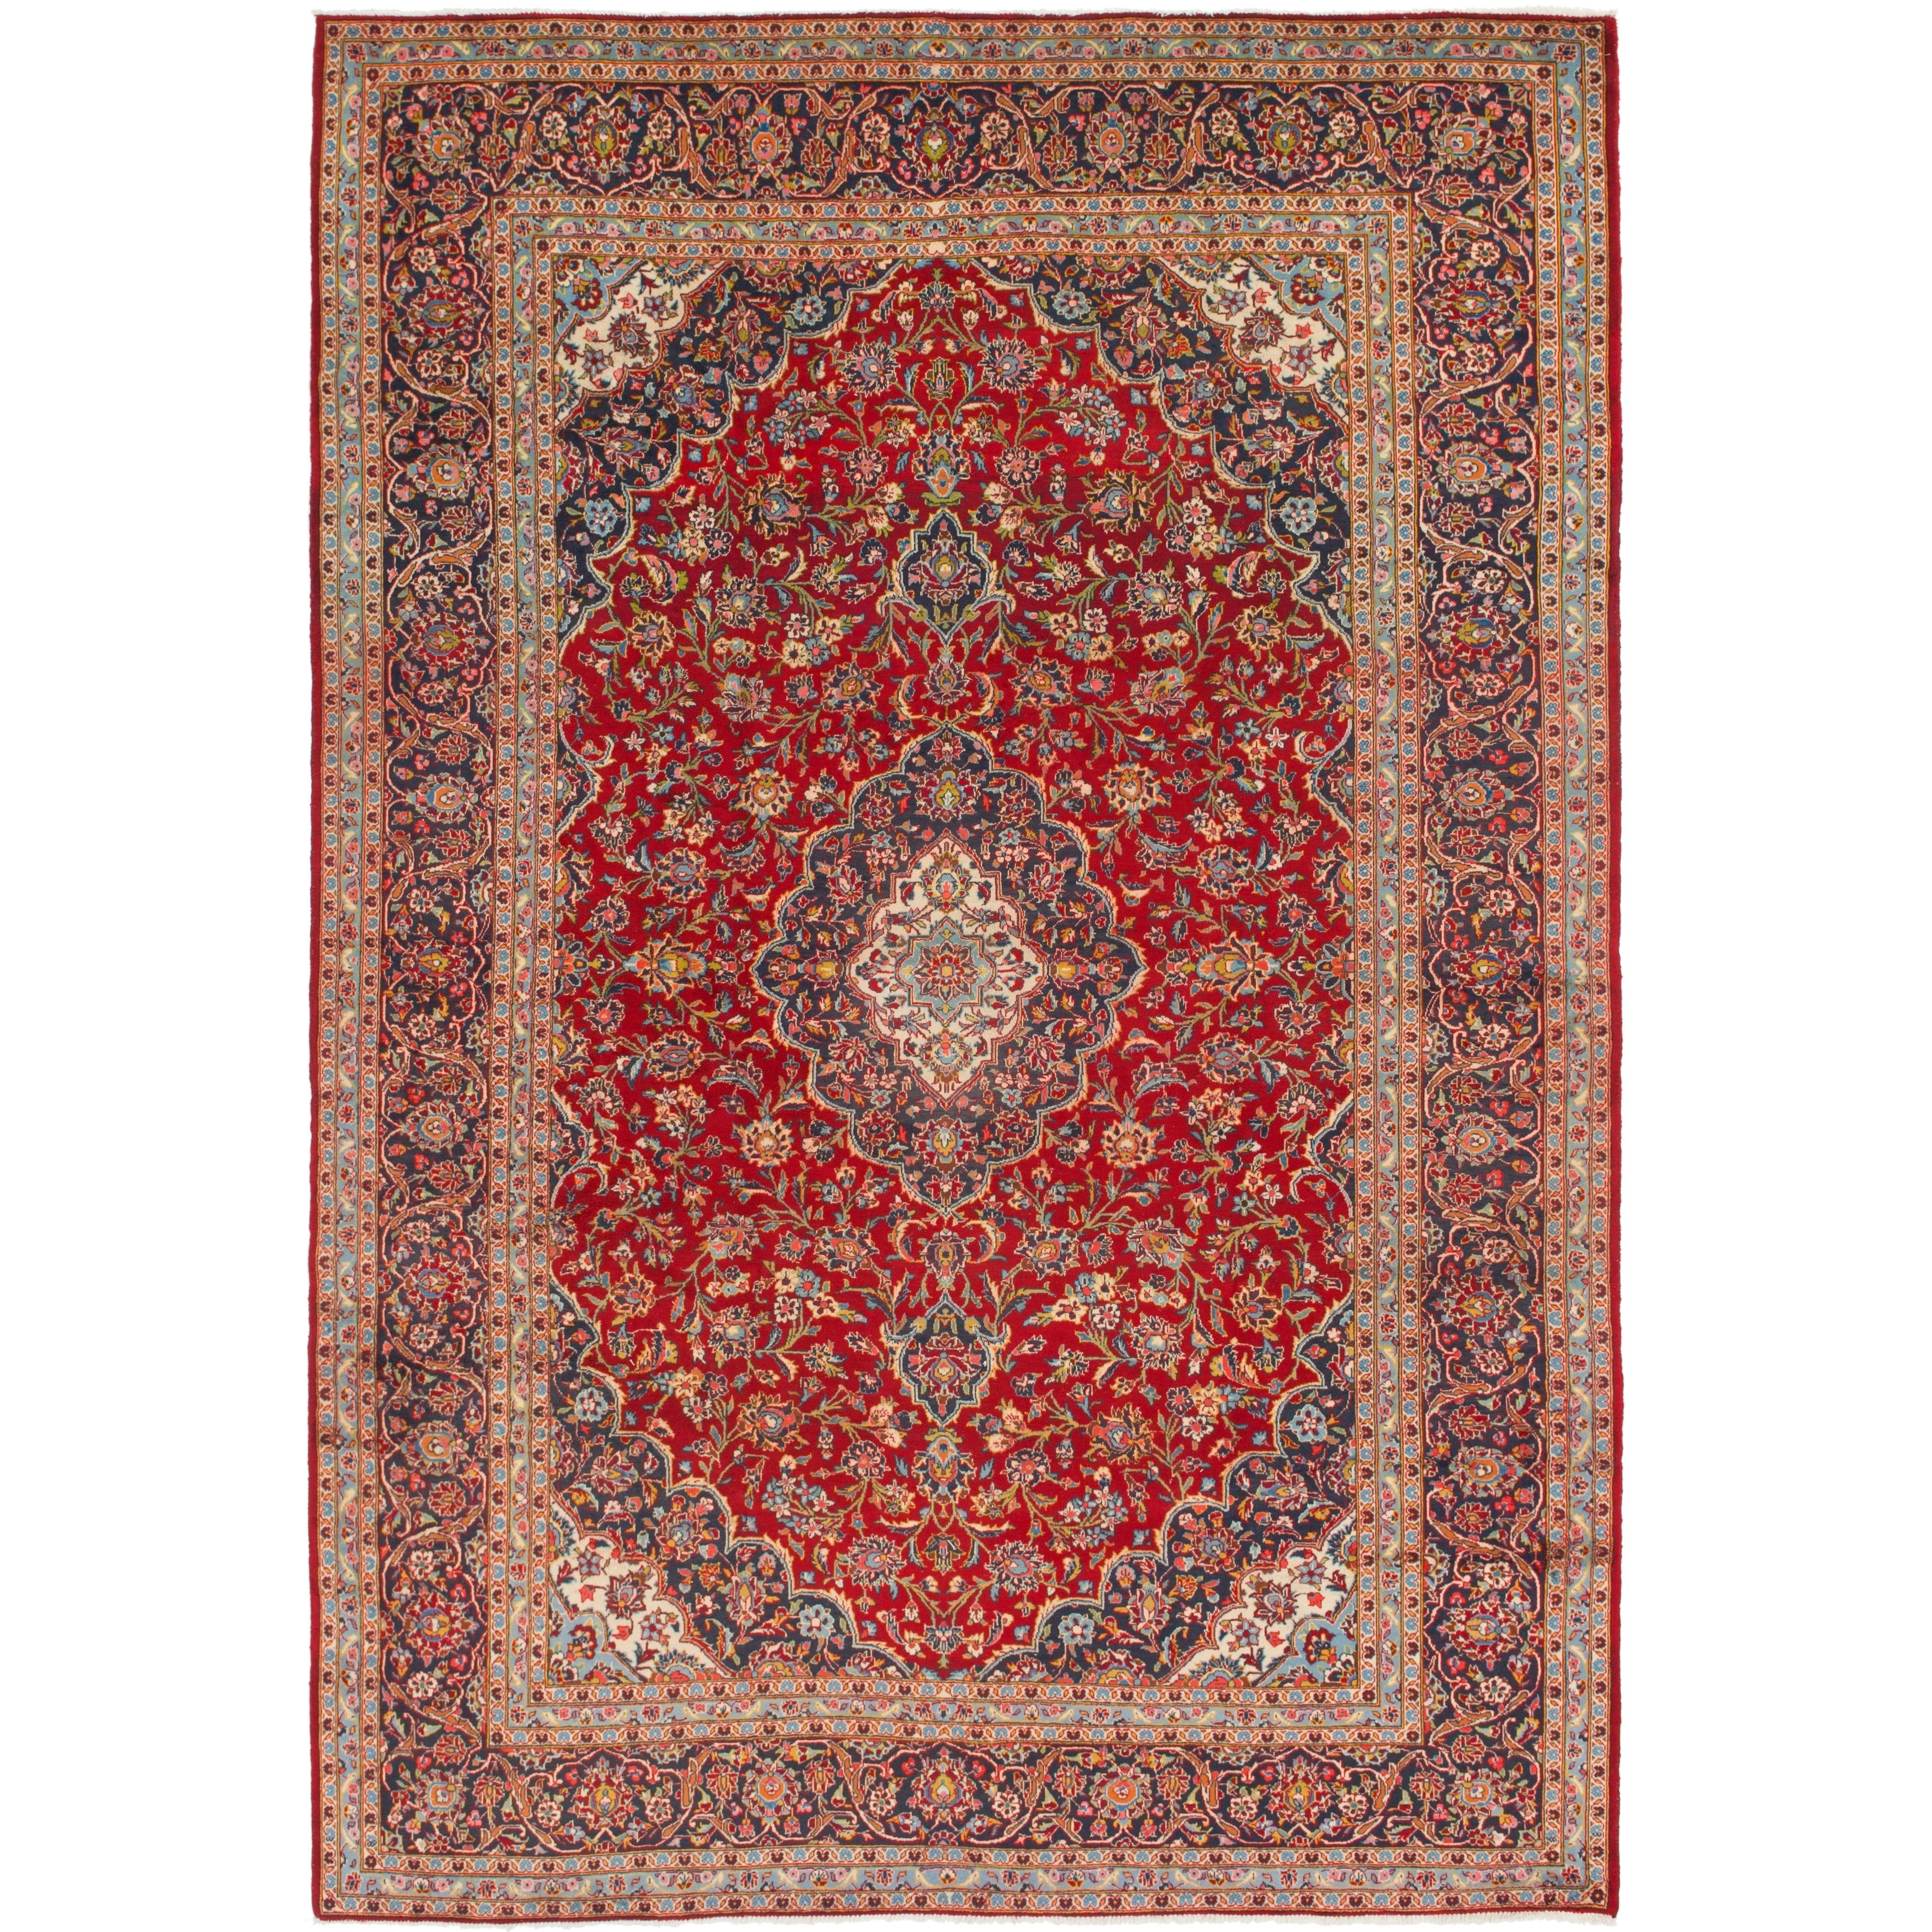 Hand Knotted Kashan Semi Antique Wool Area Rug - 9 5 x 13 8 (Red - 9 5 x 13 8)